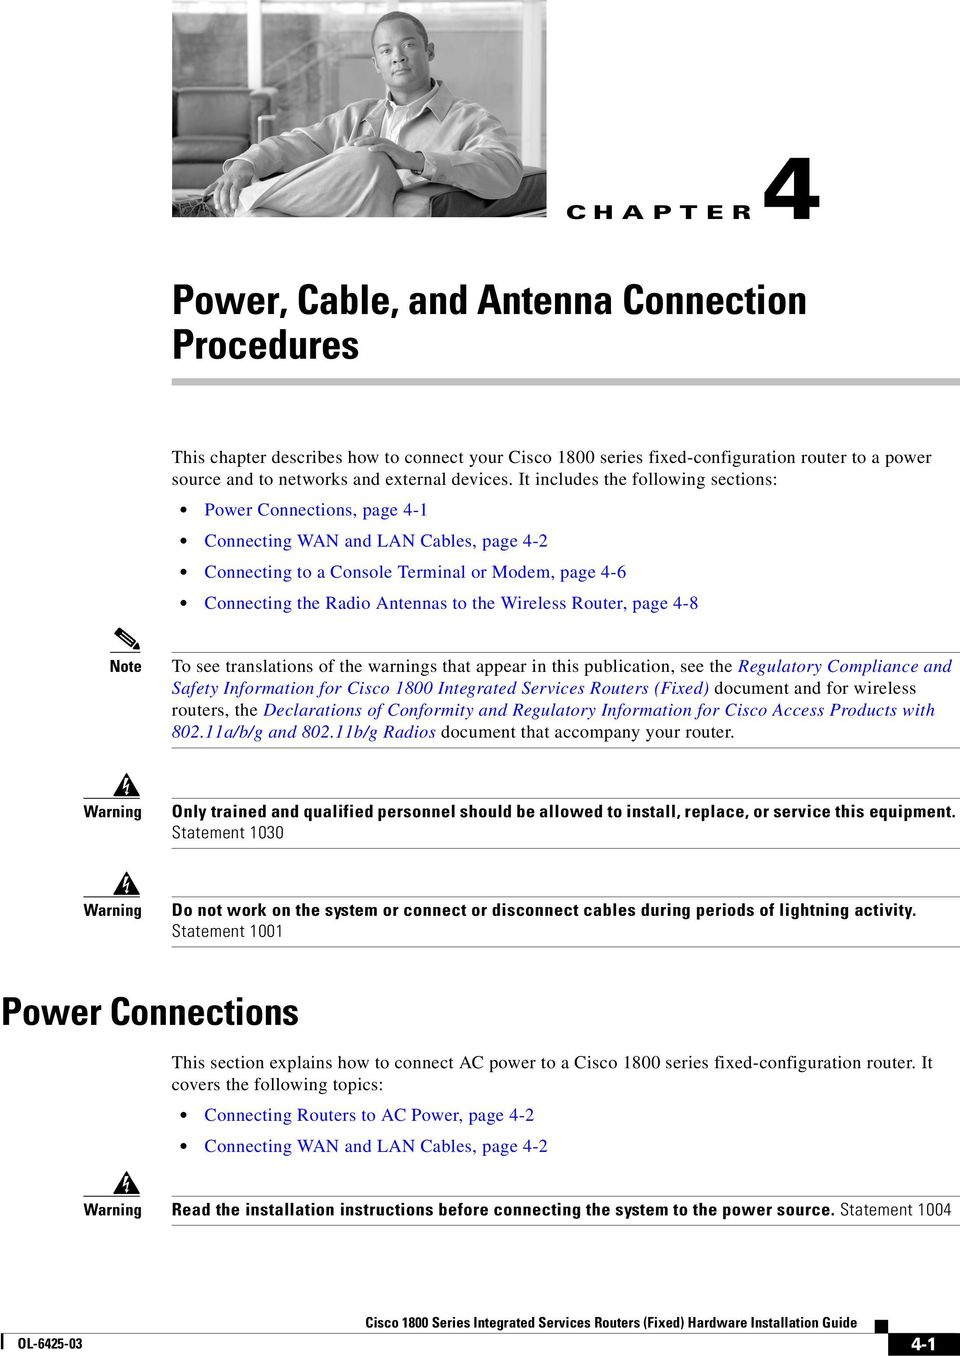 It includes the following sections: Power Connections, page 4-1 Connecting WAN and LAN Cables, page 4-2 Connecting to a Console Terminal or Modem, page 4-6 Connecting the Radio Antennas to the